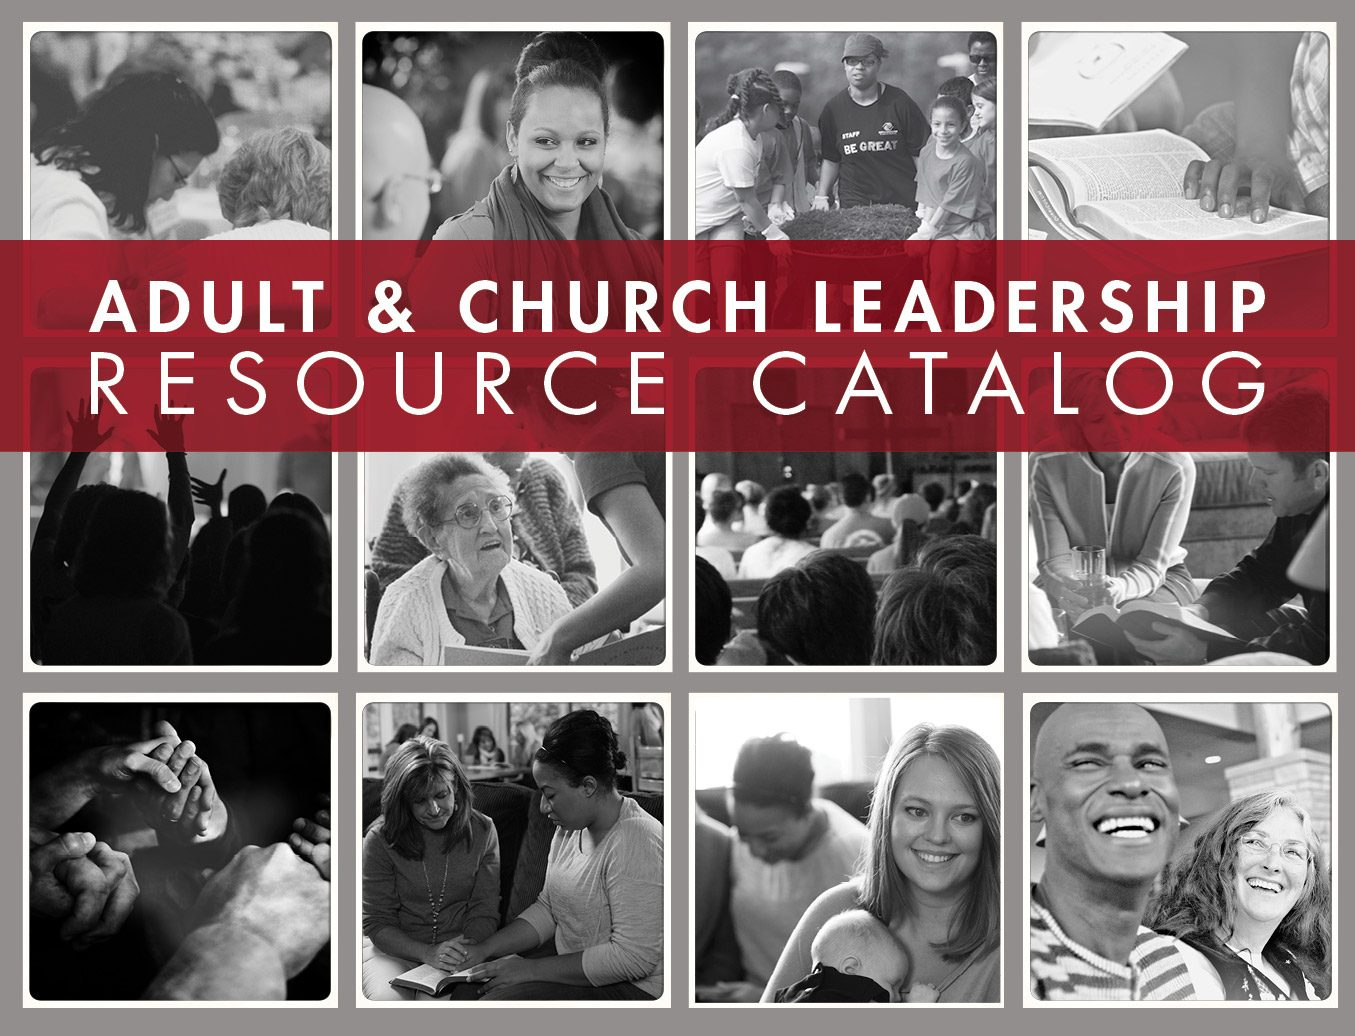 Adult and Church Leadership Spring 2015 Catalog